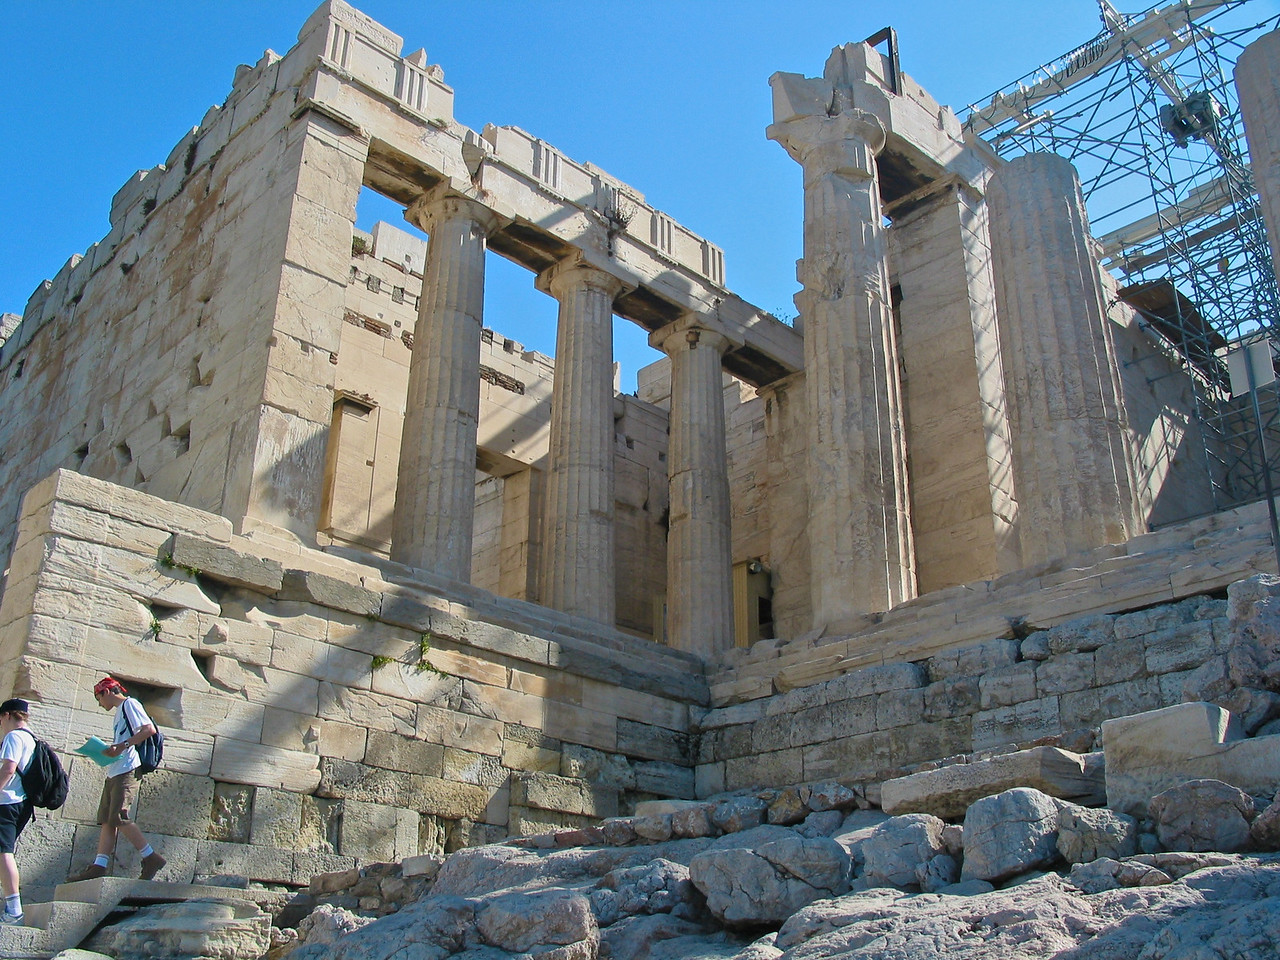 In 1975, the Greek government began a concerted effort to restore the Parthenon and other Acropolis structures. After some delay a Committee for the Conservation of the Acropolis Monuments was established in 1983. The project later attracted funding and technical assistance from the European Union. An archaeological committee thoroughly documented every artifact remaining on the site, and architects assisted with computer models to determine their original locations. Particularly important and fragile sculptures were transferred to the Acropolis Museum.